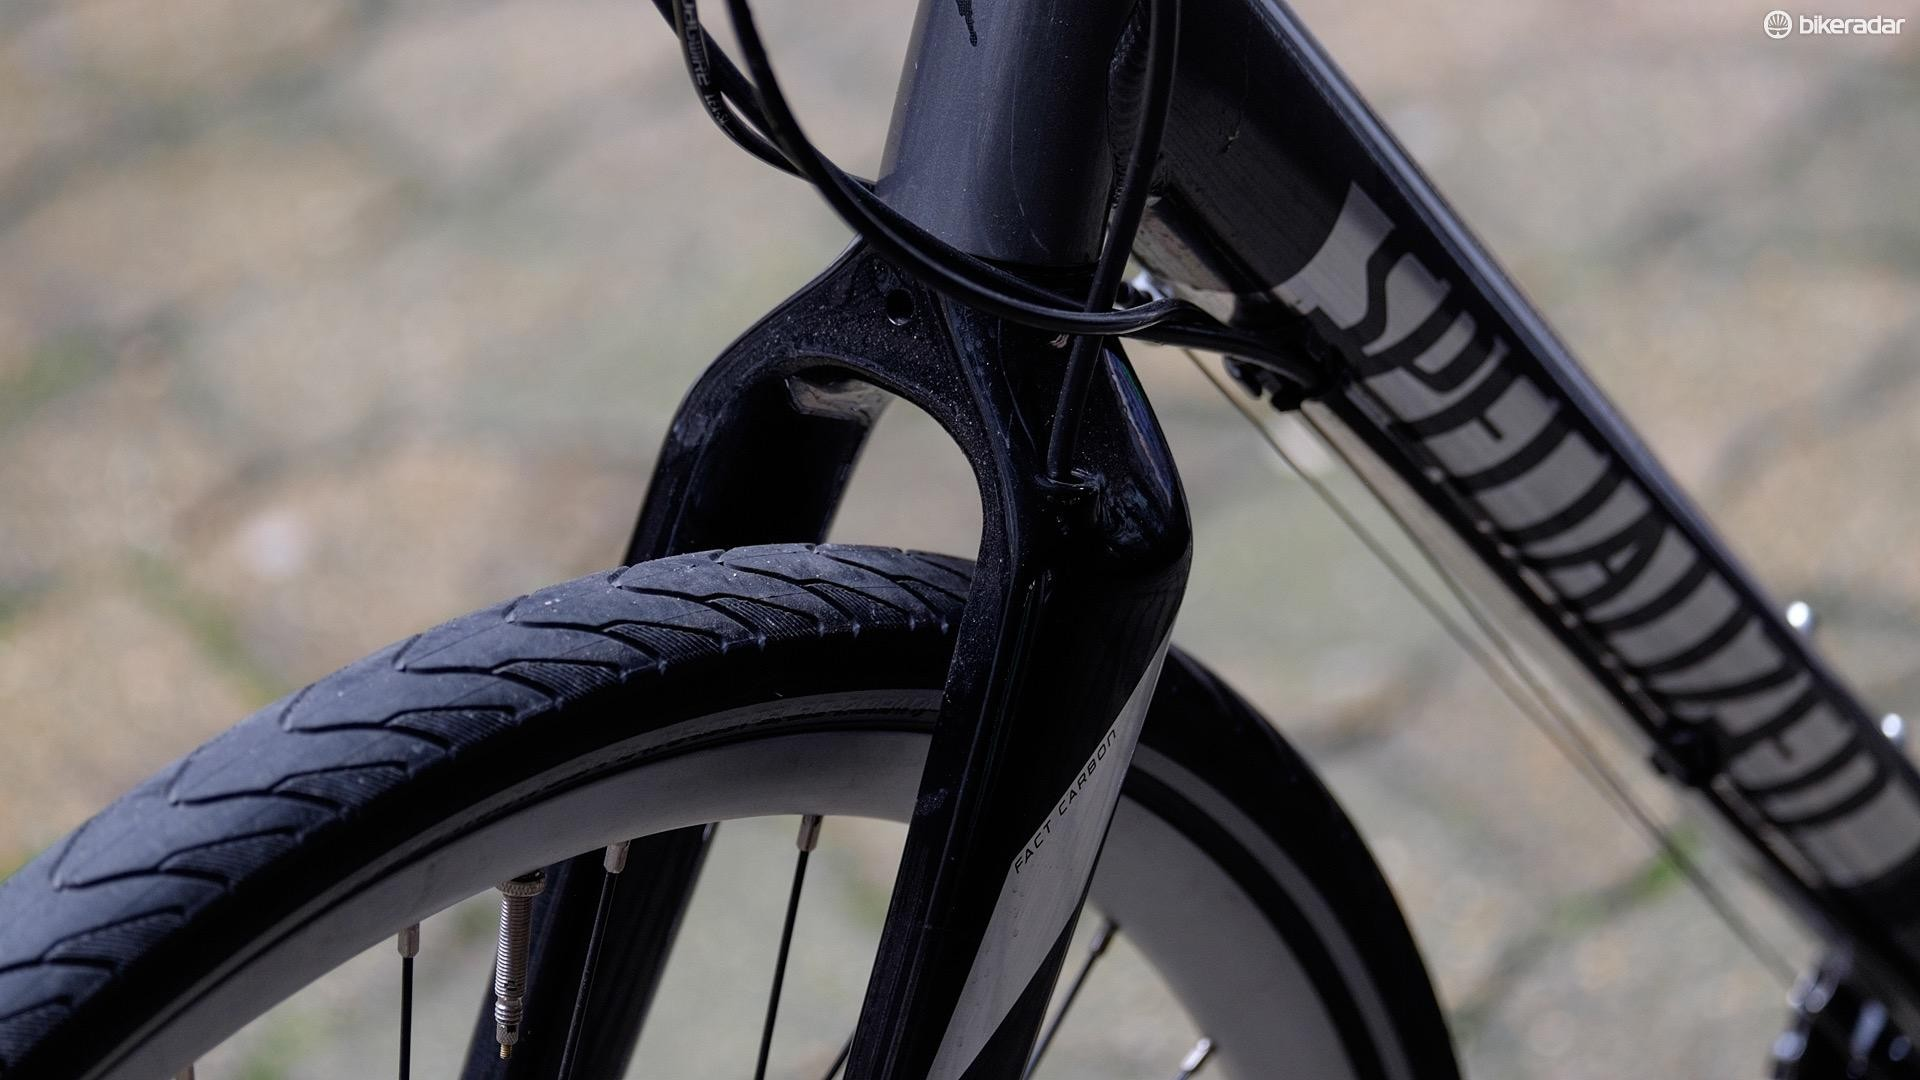 The front brake hose is routed internally through the Sirrus' carbon fork